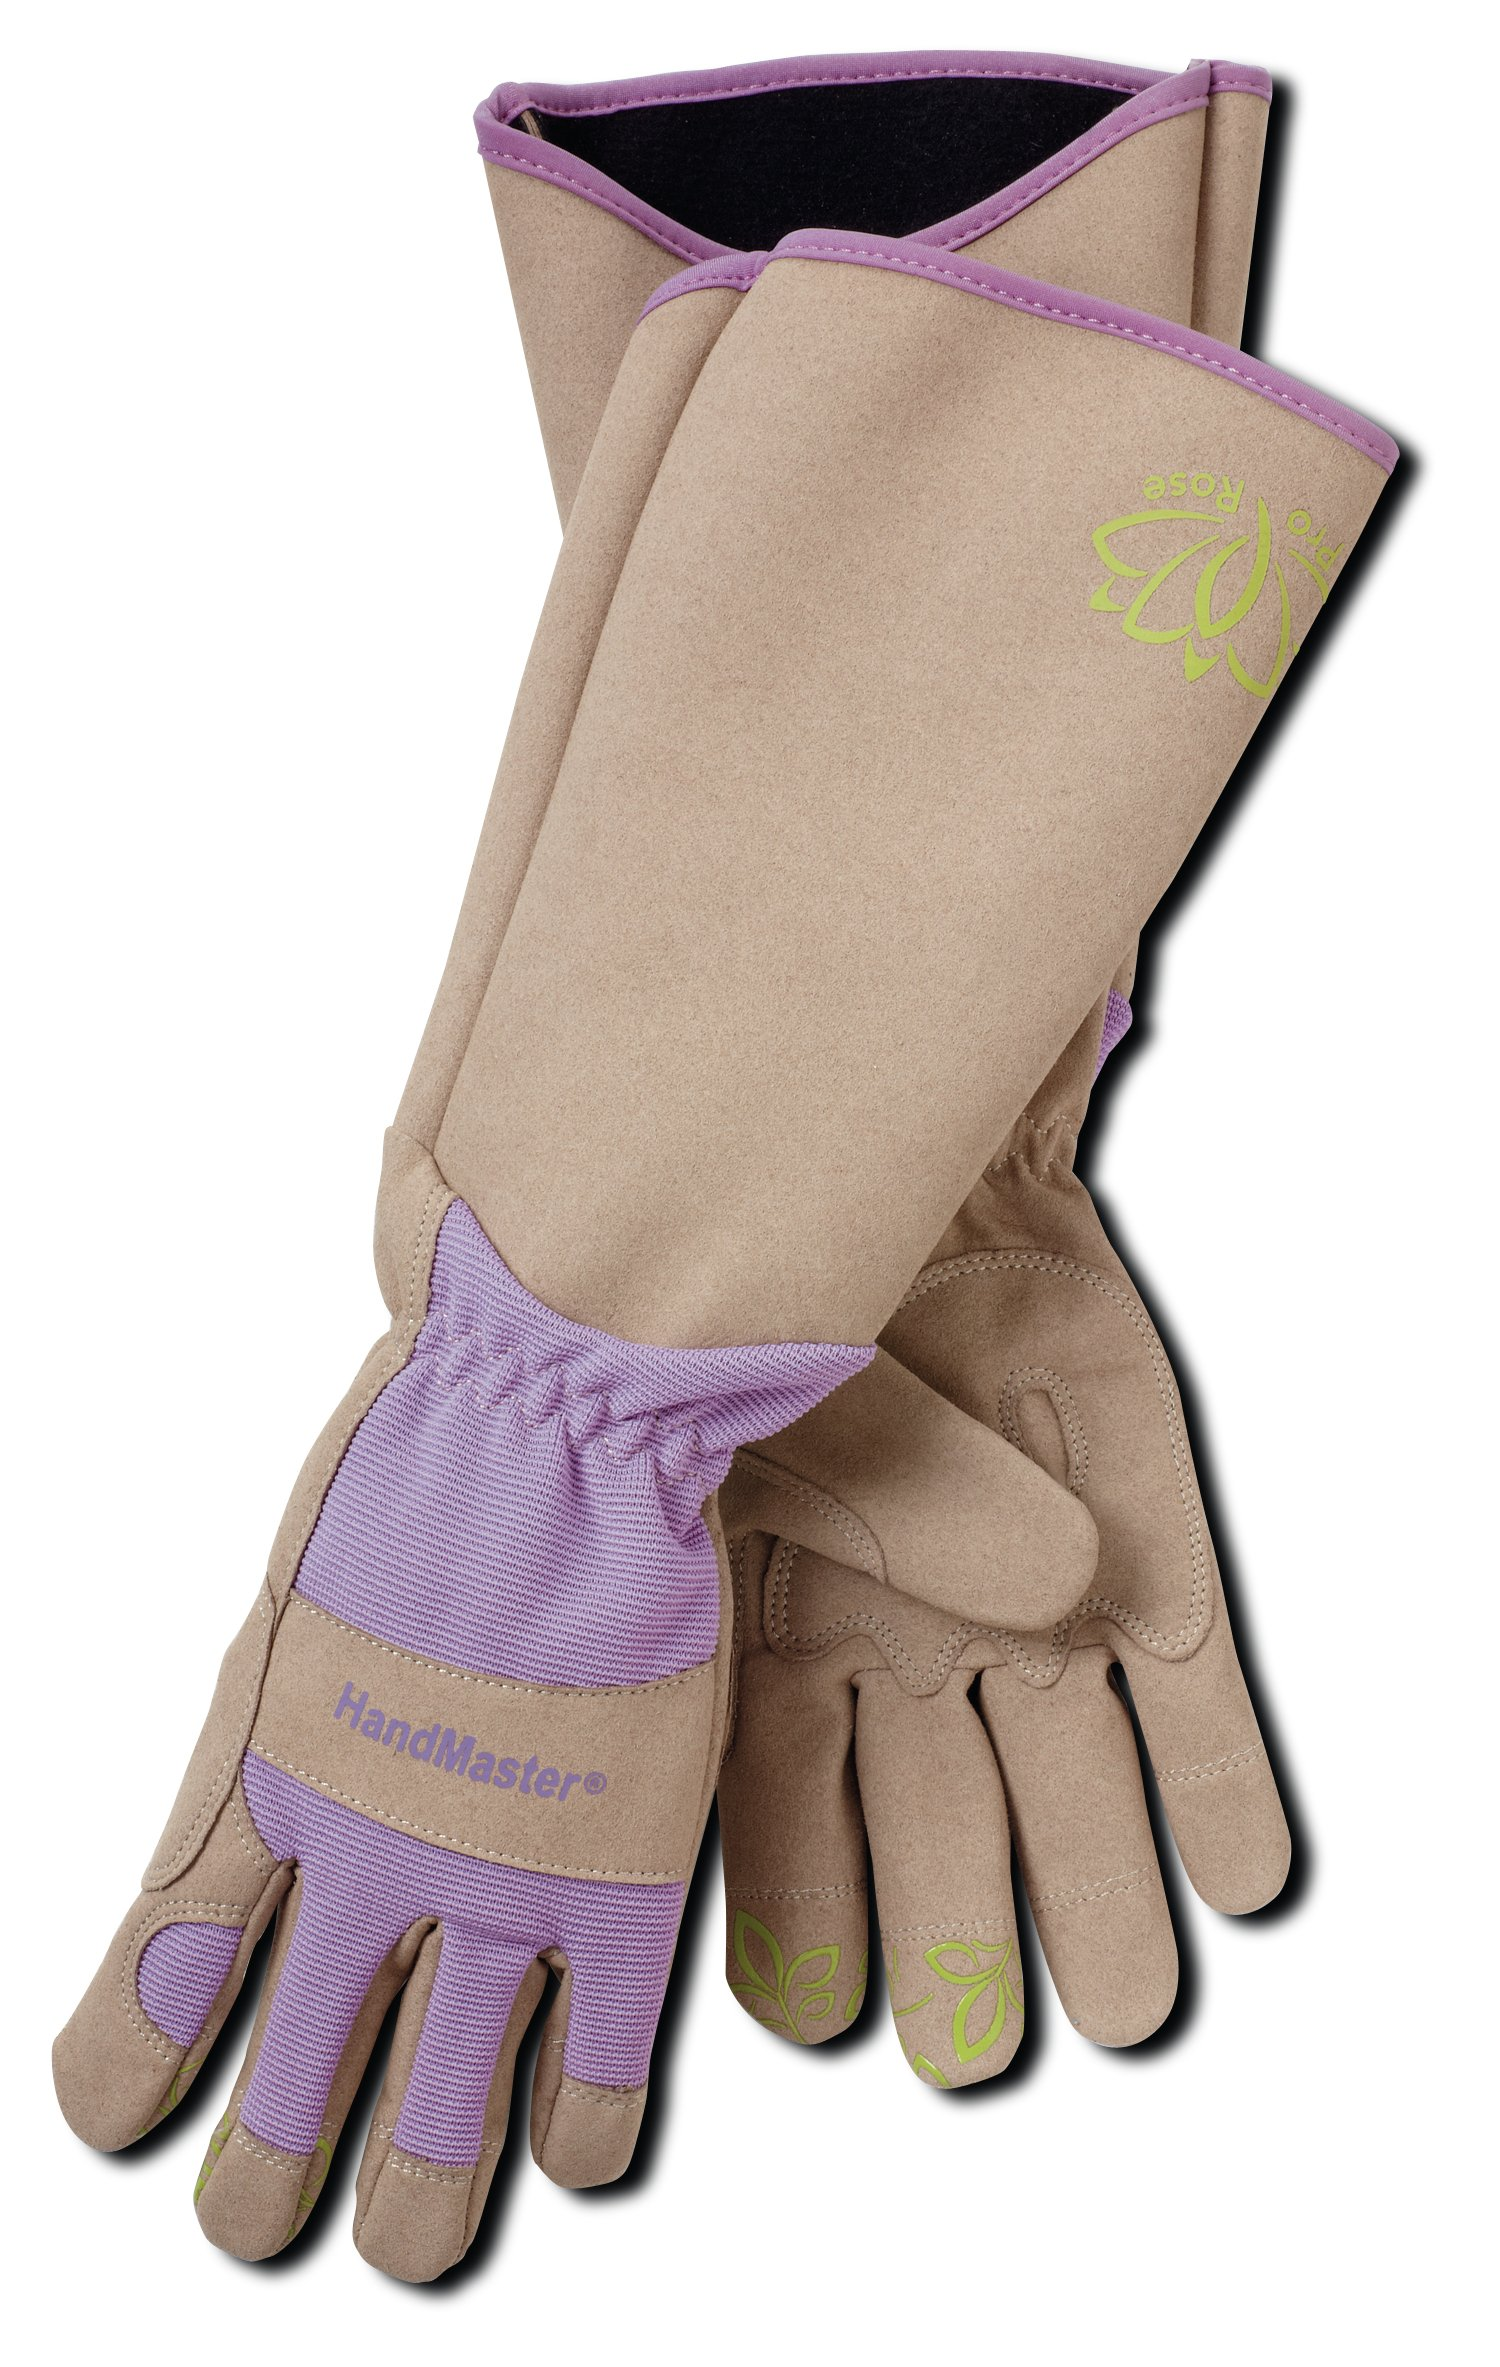 Professional Rose Pruning Thornproof Gardening Gloves with Extra Long Forearm Protection for Women (BE195T-L) - Puncture Resistant, Large (1 Pair)